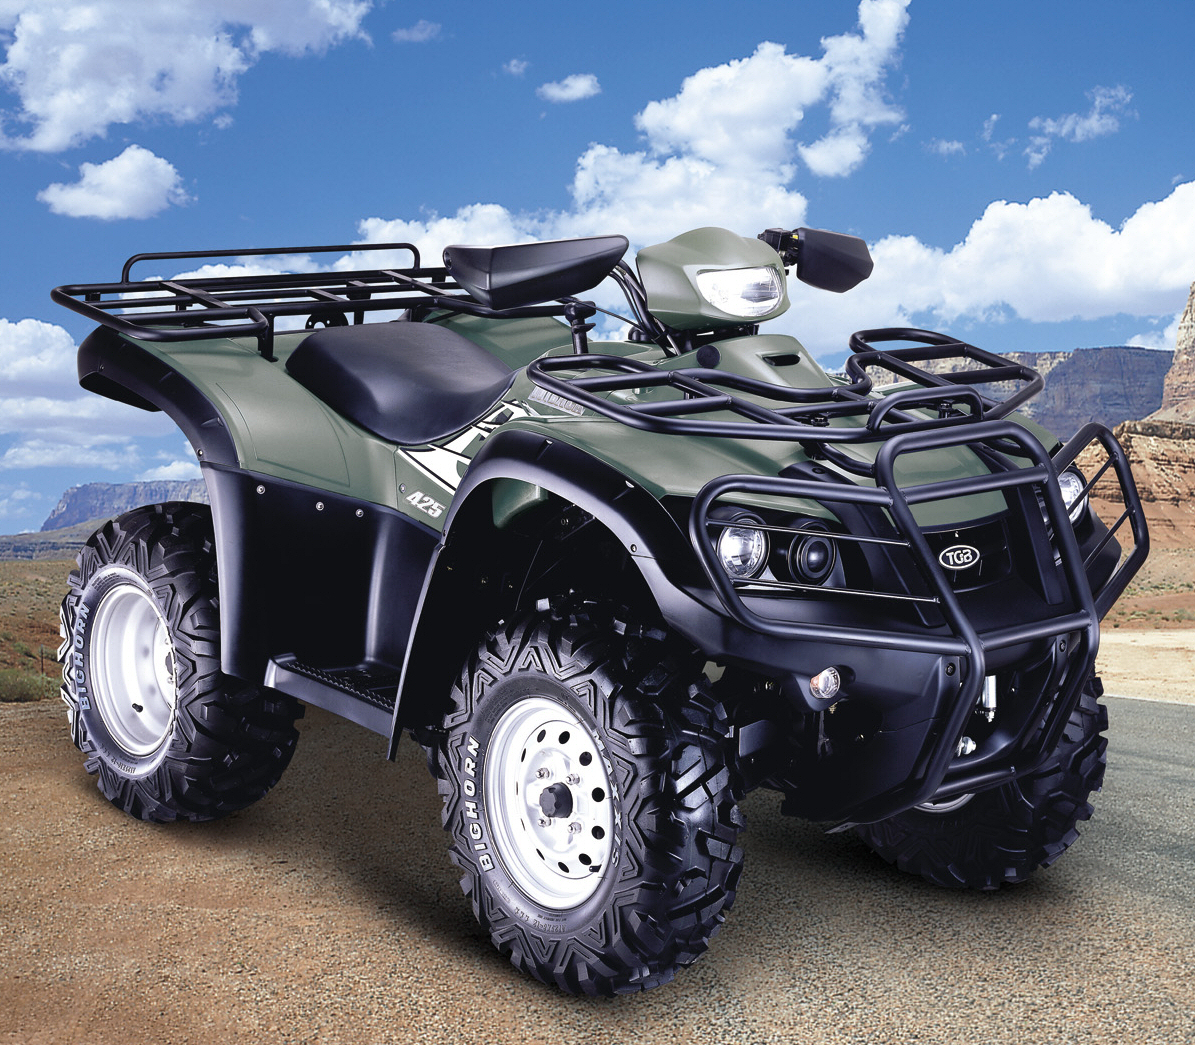 tgb dealerships receive financing from ge 2007 tgb outback 425 4x4 atvtgb s powerful 425 all terrain vehicle comes with 4 wheel drive digital dash and automatic transmission